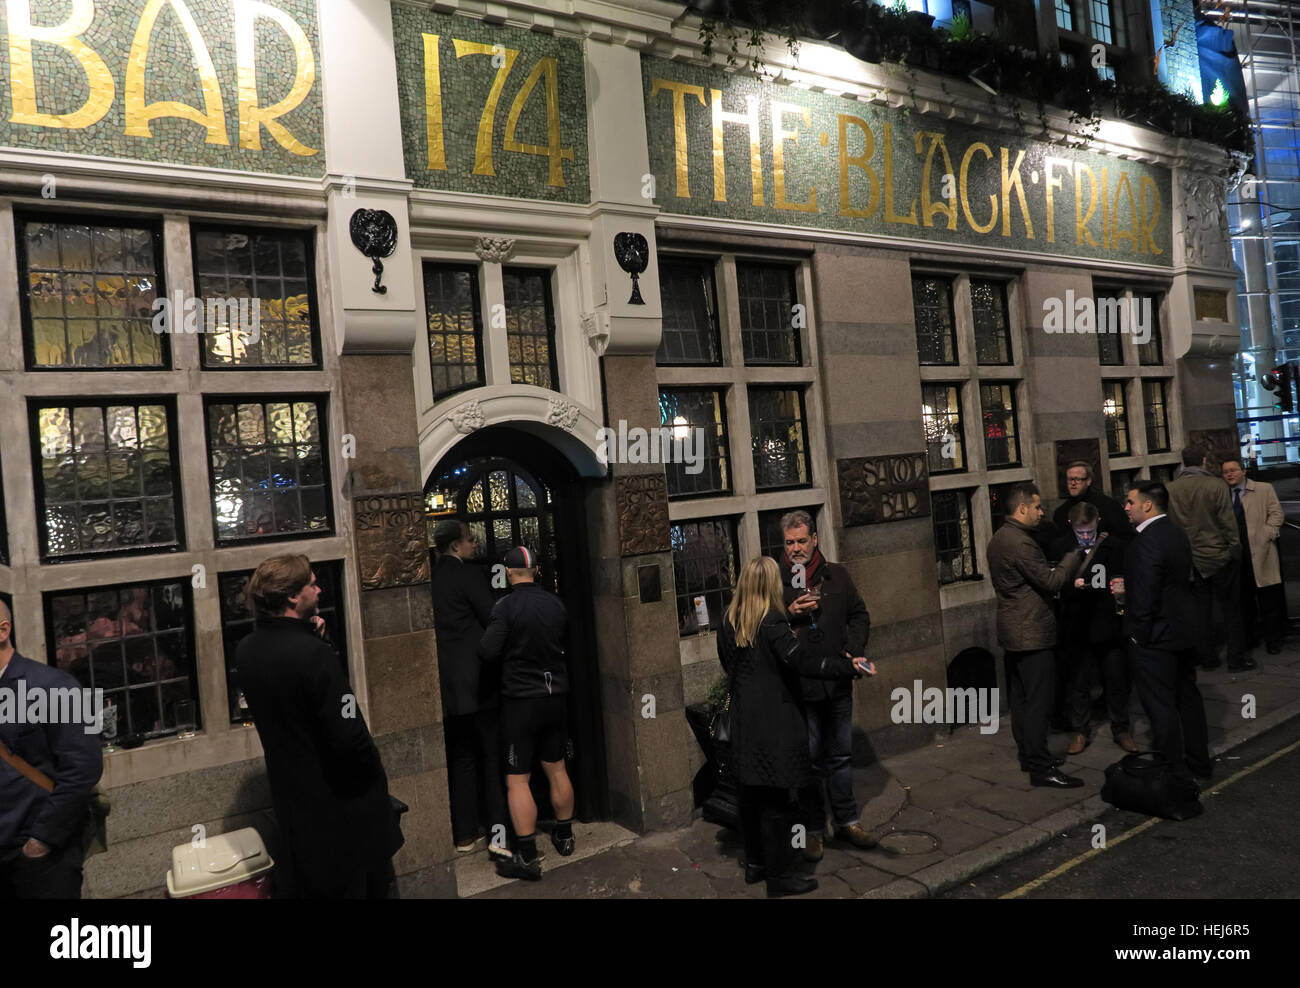 City Centre,City,Centre,dusk,pub,pubs,bars,bar,classic,CAMRA,real,ale,realale,real ale,art,deco,artdeco,art-deco,The Black Friar,at,night,dusk,drinking,beer,beers,gin,palace,gin palace,saloon bar,174,drinkers,outside,exterior,Henry Poole,Herbert Fuller-Clark,Art Nouveau,174 The Black Friar,GoTonySmith,@HotpixUK,Tony,Smith,UK,GB,Great,Britain,United,Kingdom,English,British,England,London,Greater,problem,with,problem with,issue with,LDN,City,Centre,cities,Urban,Urbanist,town,infrastructure,transport,tour,tourism,tourists,urban,attraction,attractions,pubs,bars,of,London,classic,tourist,attraction,travel,vacation,Buy Pictures of,Buy Images Of,Images of,Stock Images,Tony Smith,United Kingdom,Great Britain,Greater London,British Isles,City Centre,Pubs Of London,must see